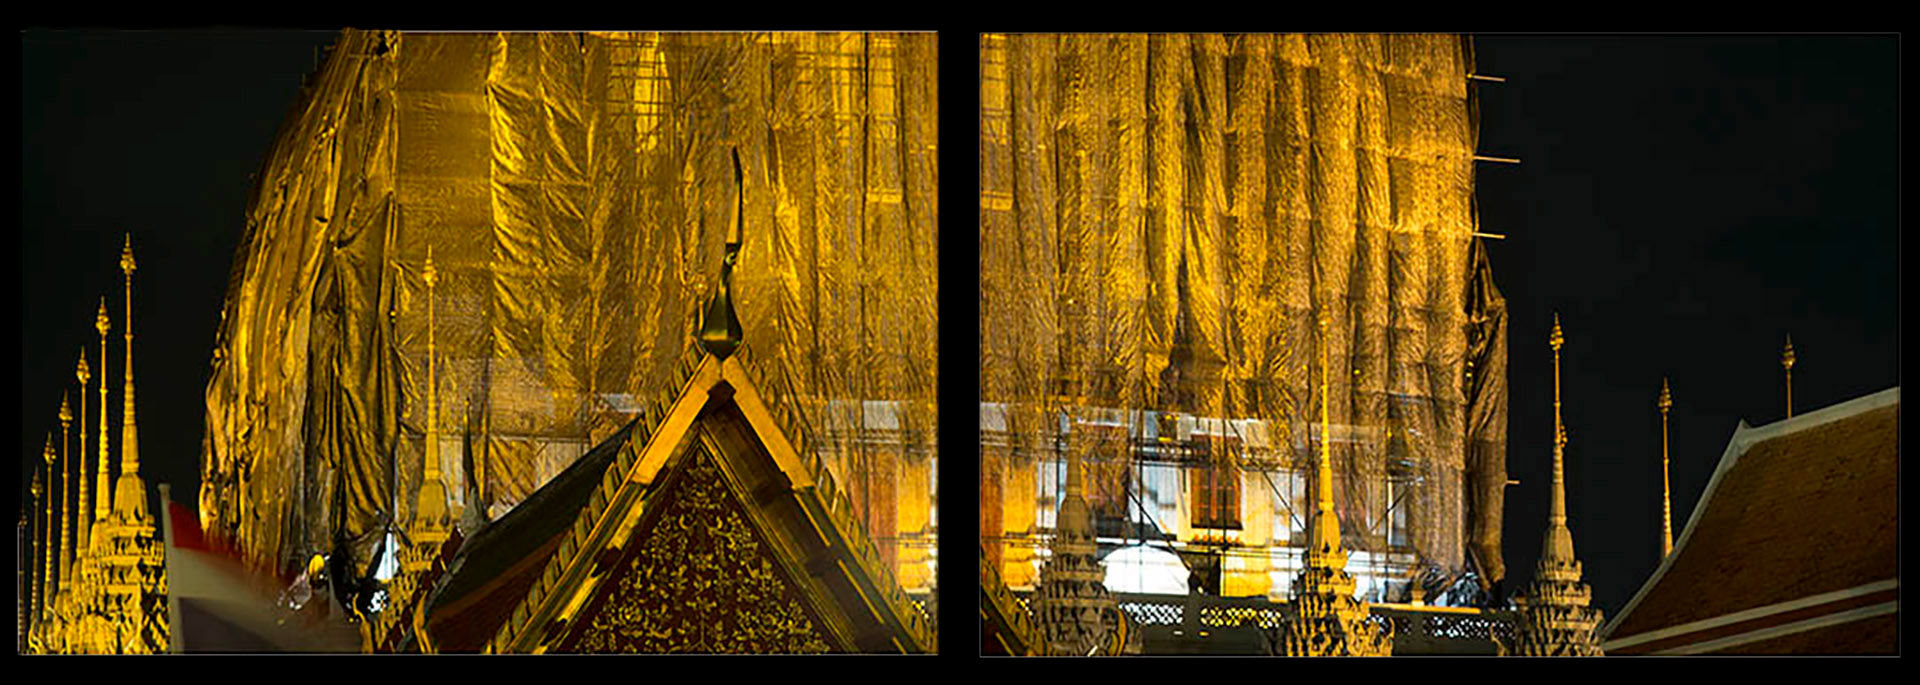 Golden Temple Wrapped